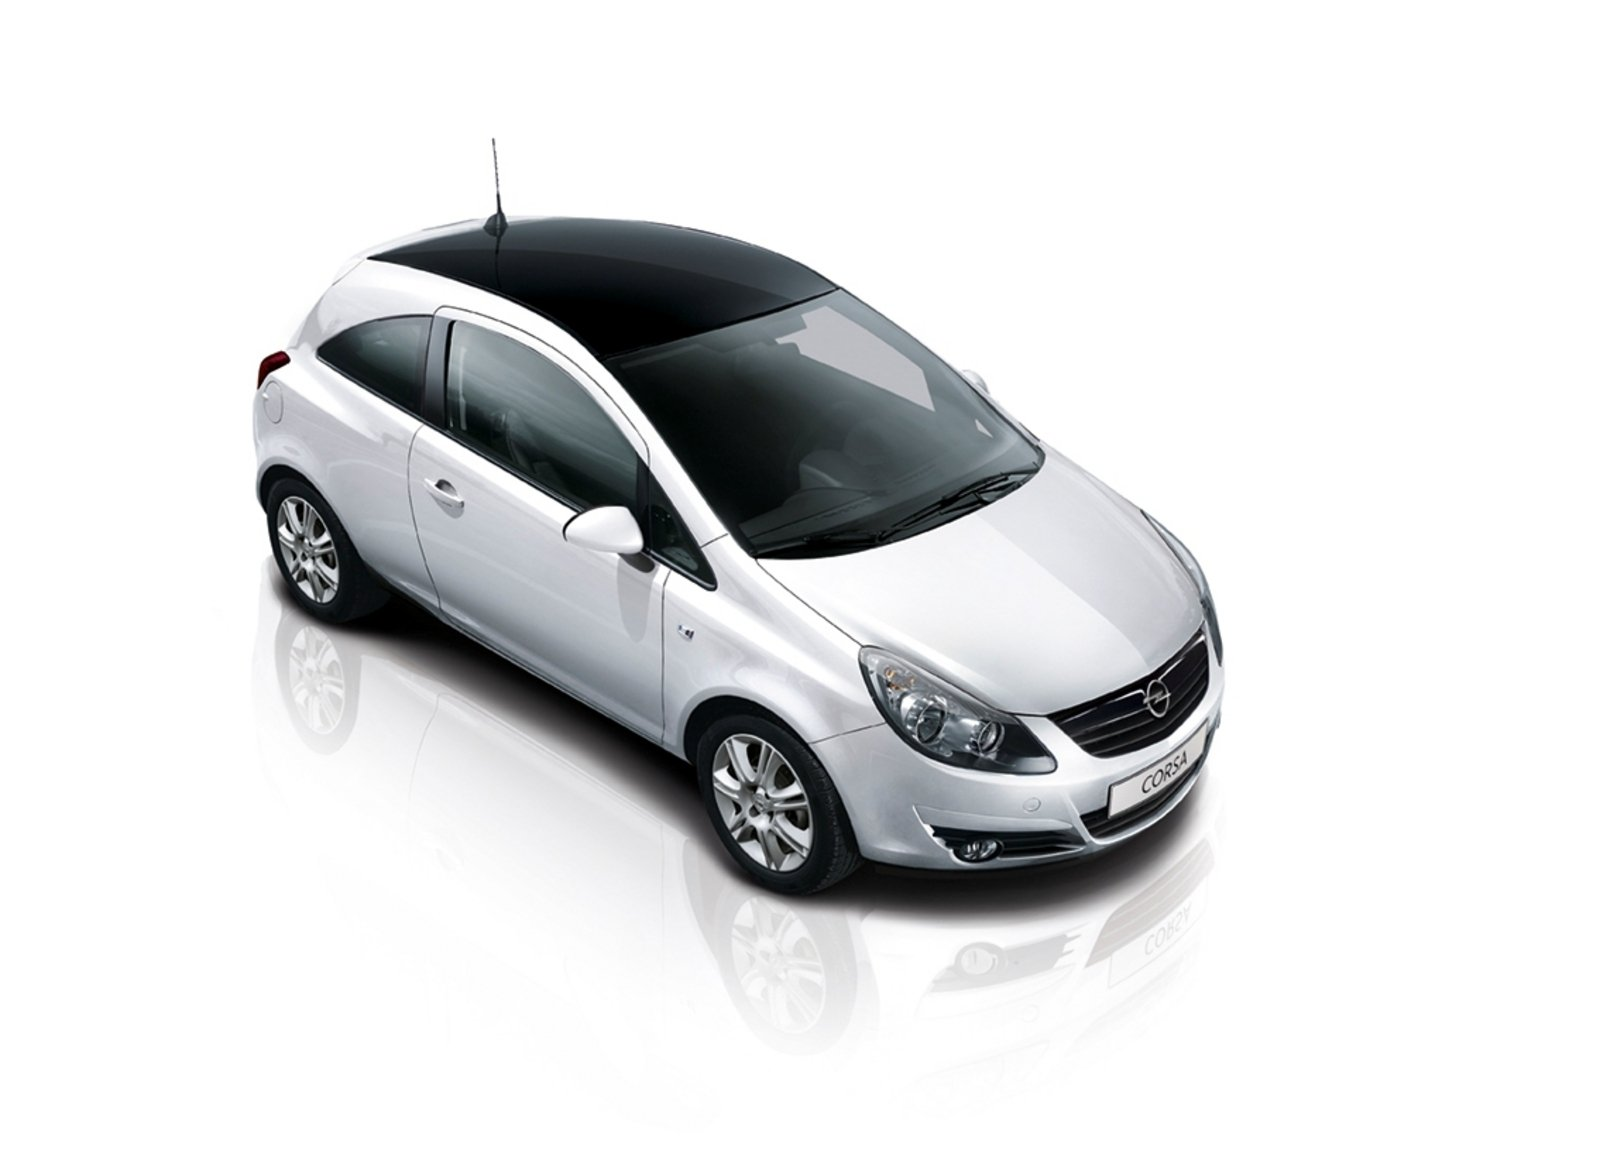 hight resolution of 2010 opel corsa color edition